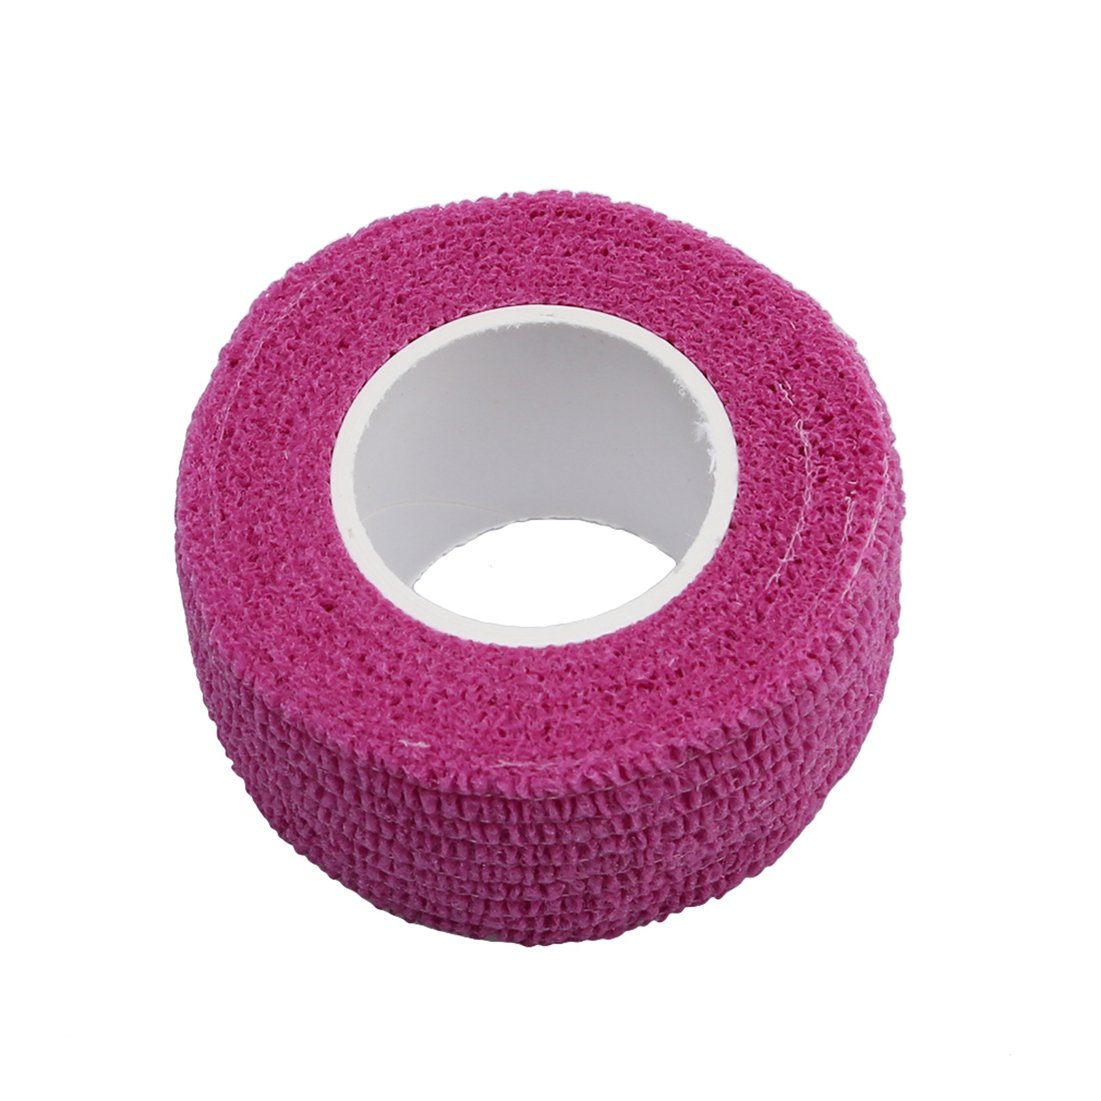 Rurah Vet Tape Wrap Self-Adherent Cohesive Tape Adhering Stick Bandage Dogs Cat Bandage Flexible Bandage ,Purple